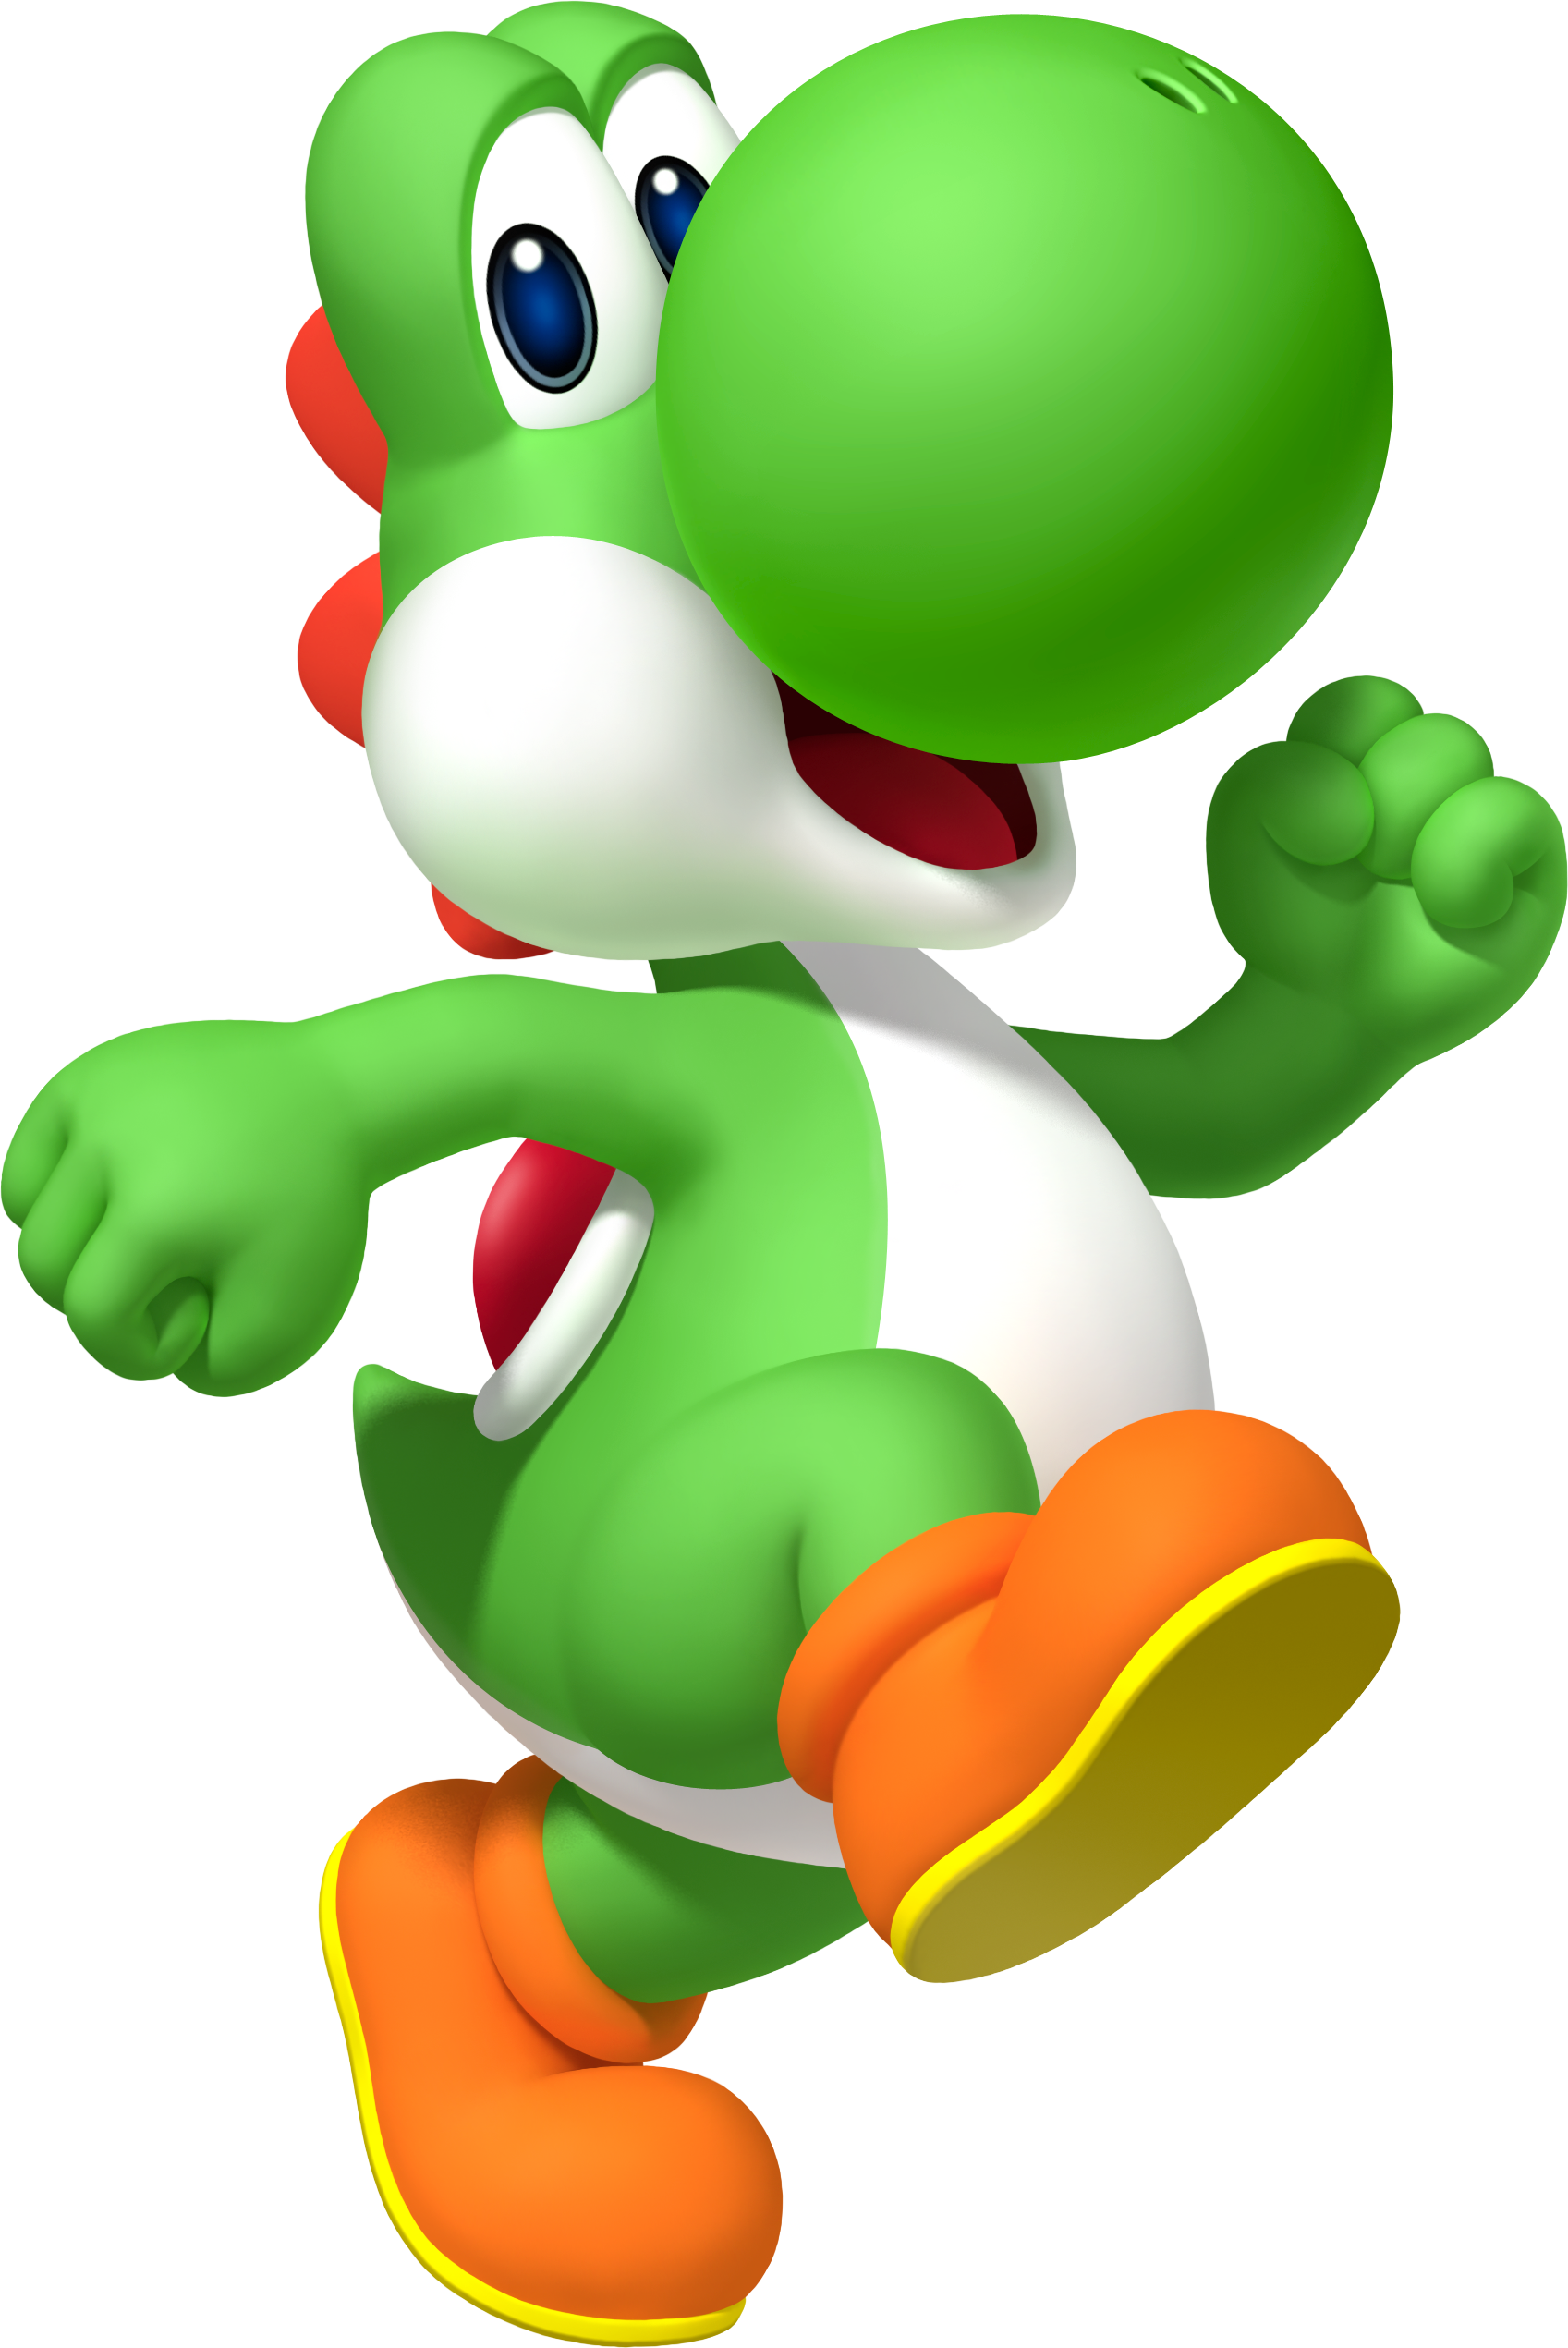 Yoshi sonic news network. Kindness clipart holding door